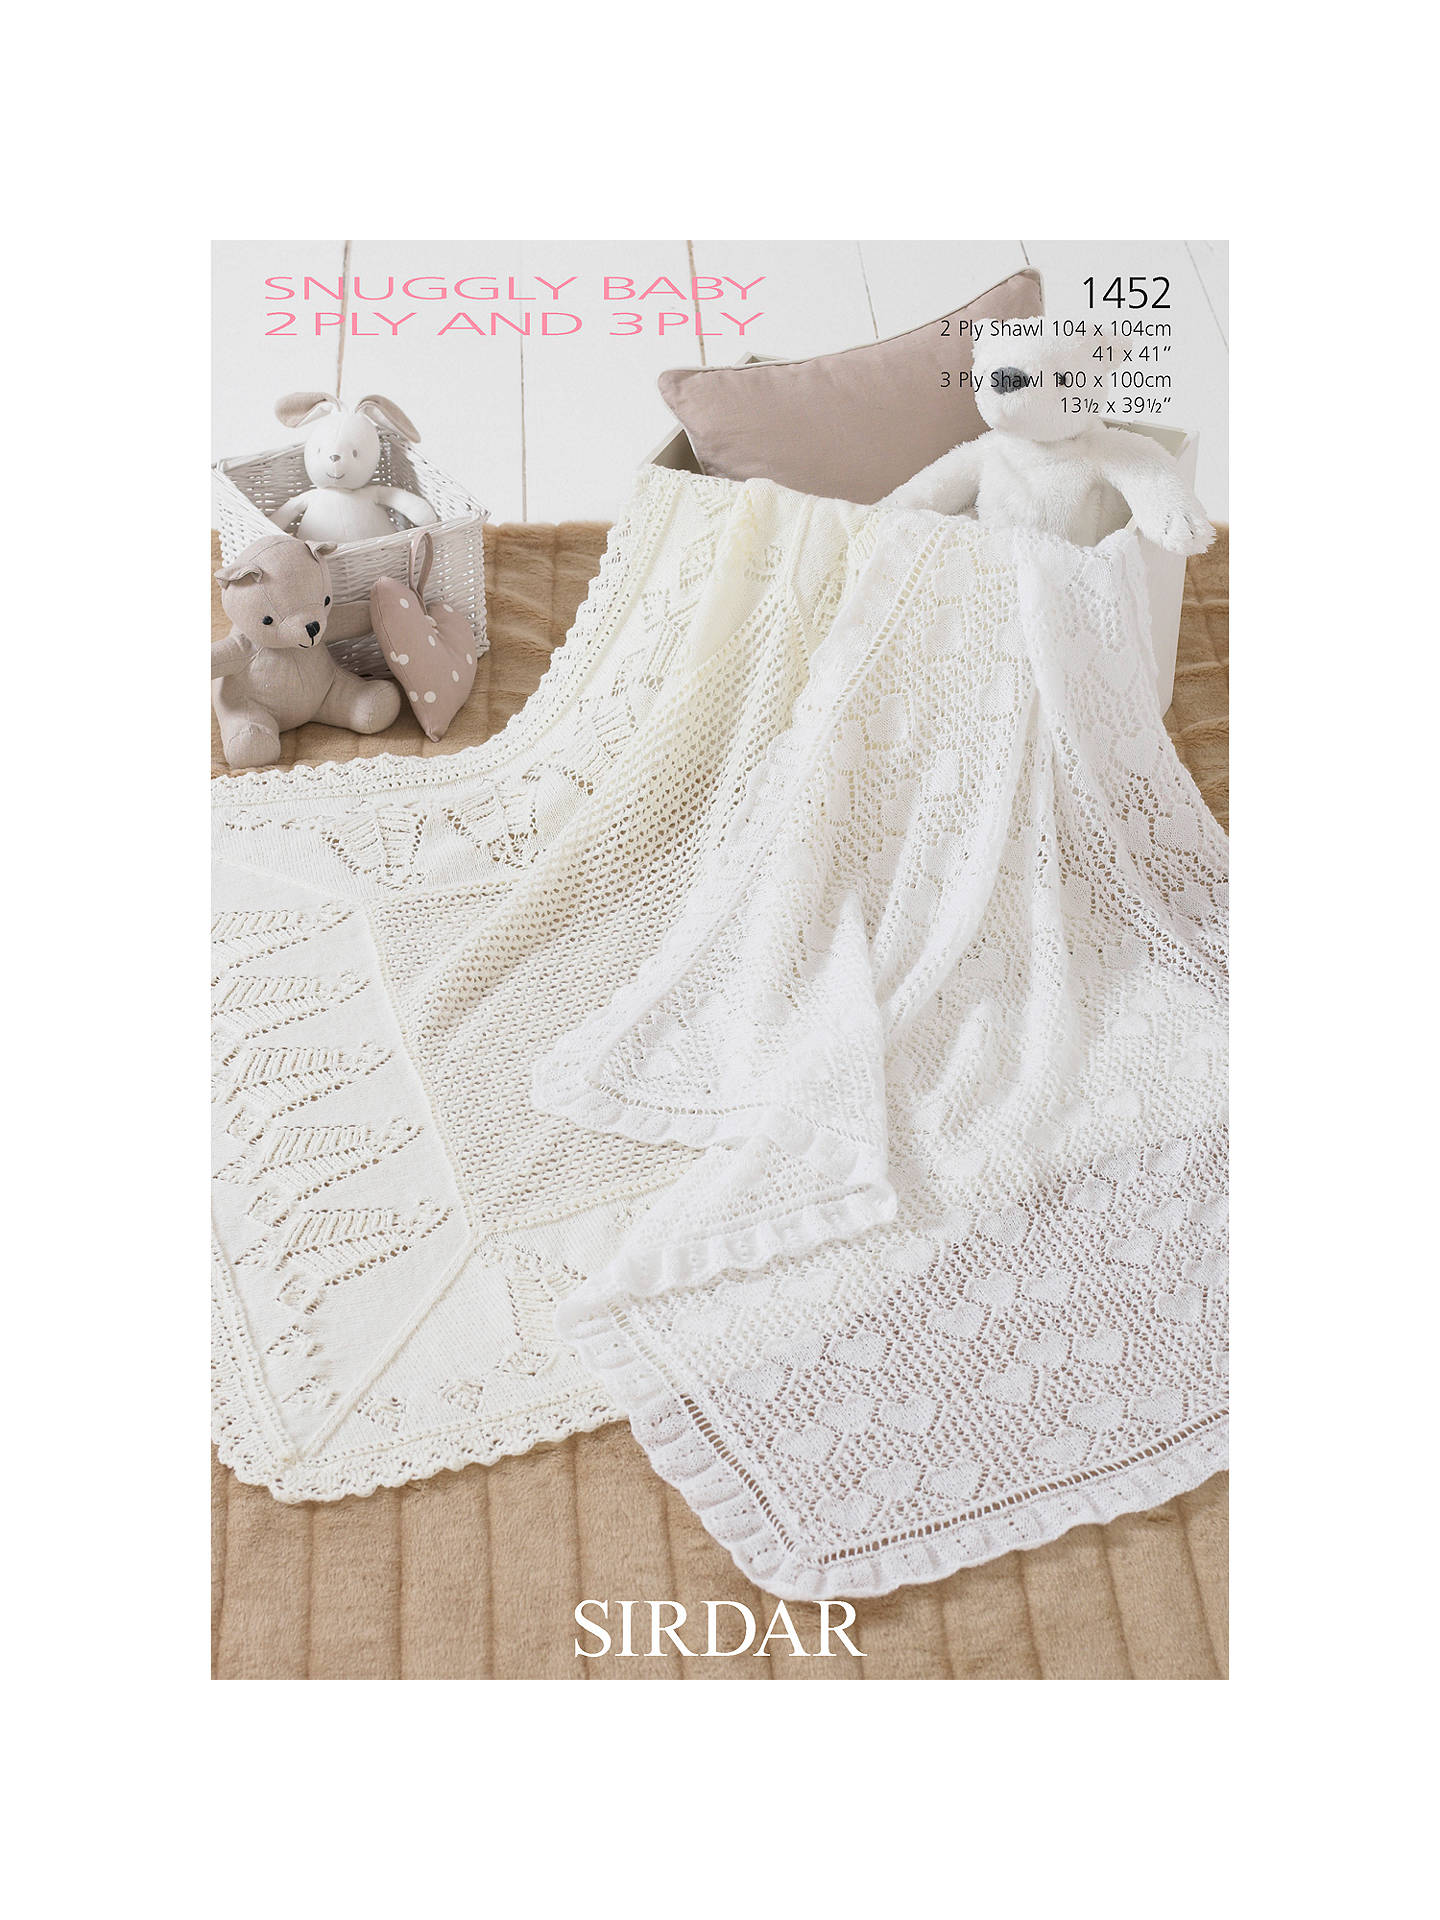 Sirdar Snuggly Baby Blanket Knitting Pattern 1452 At John Lewis